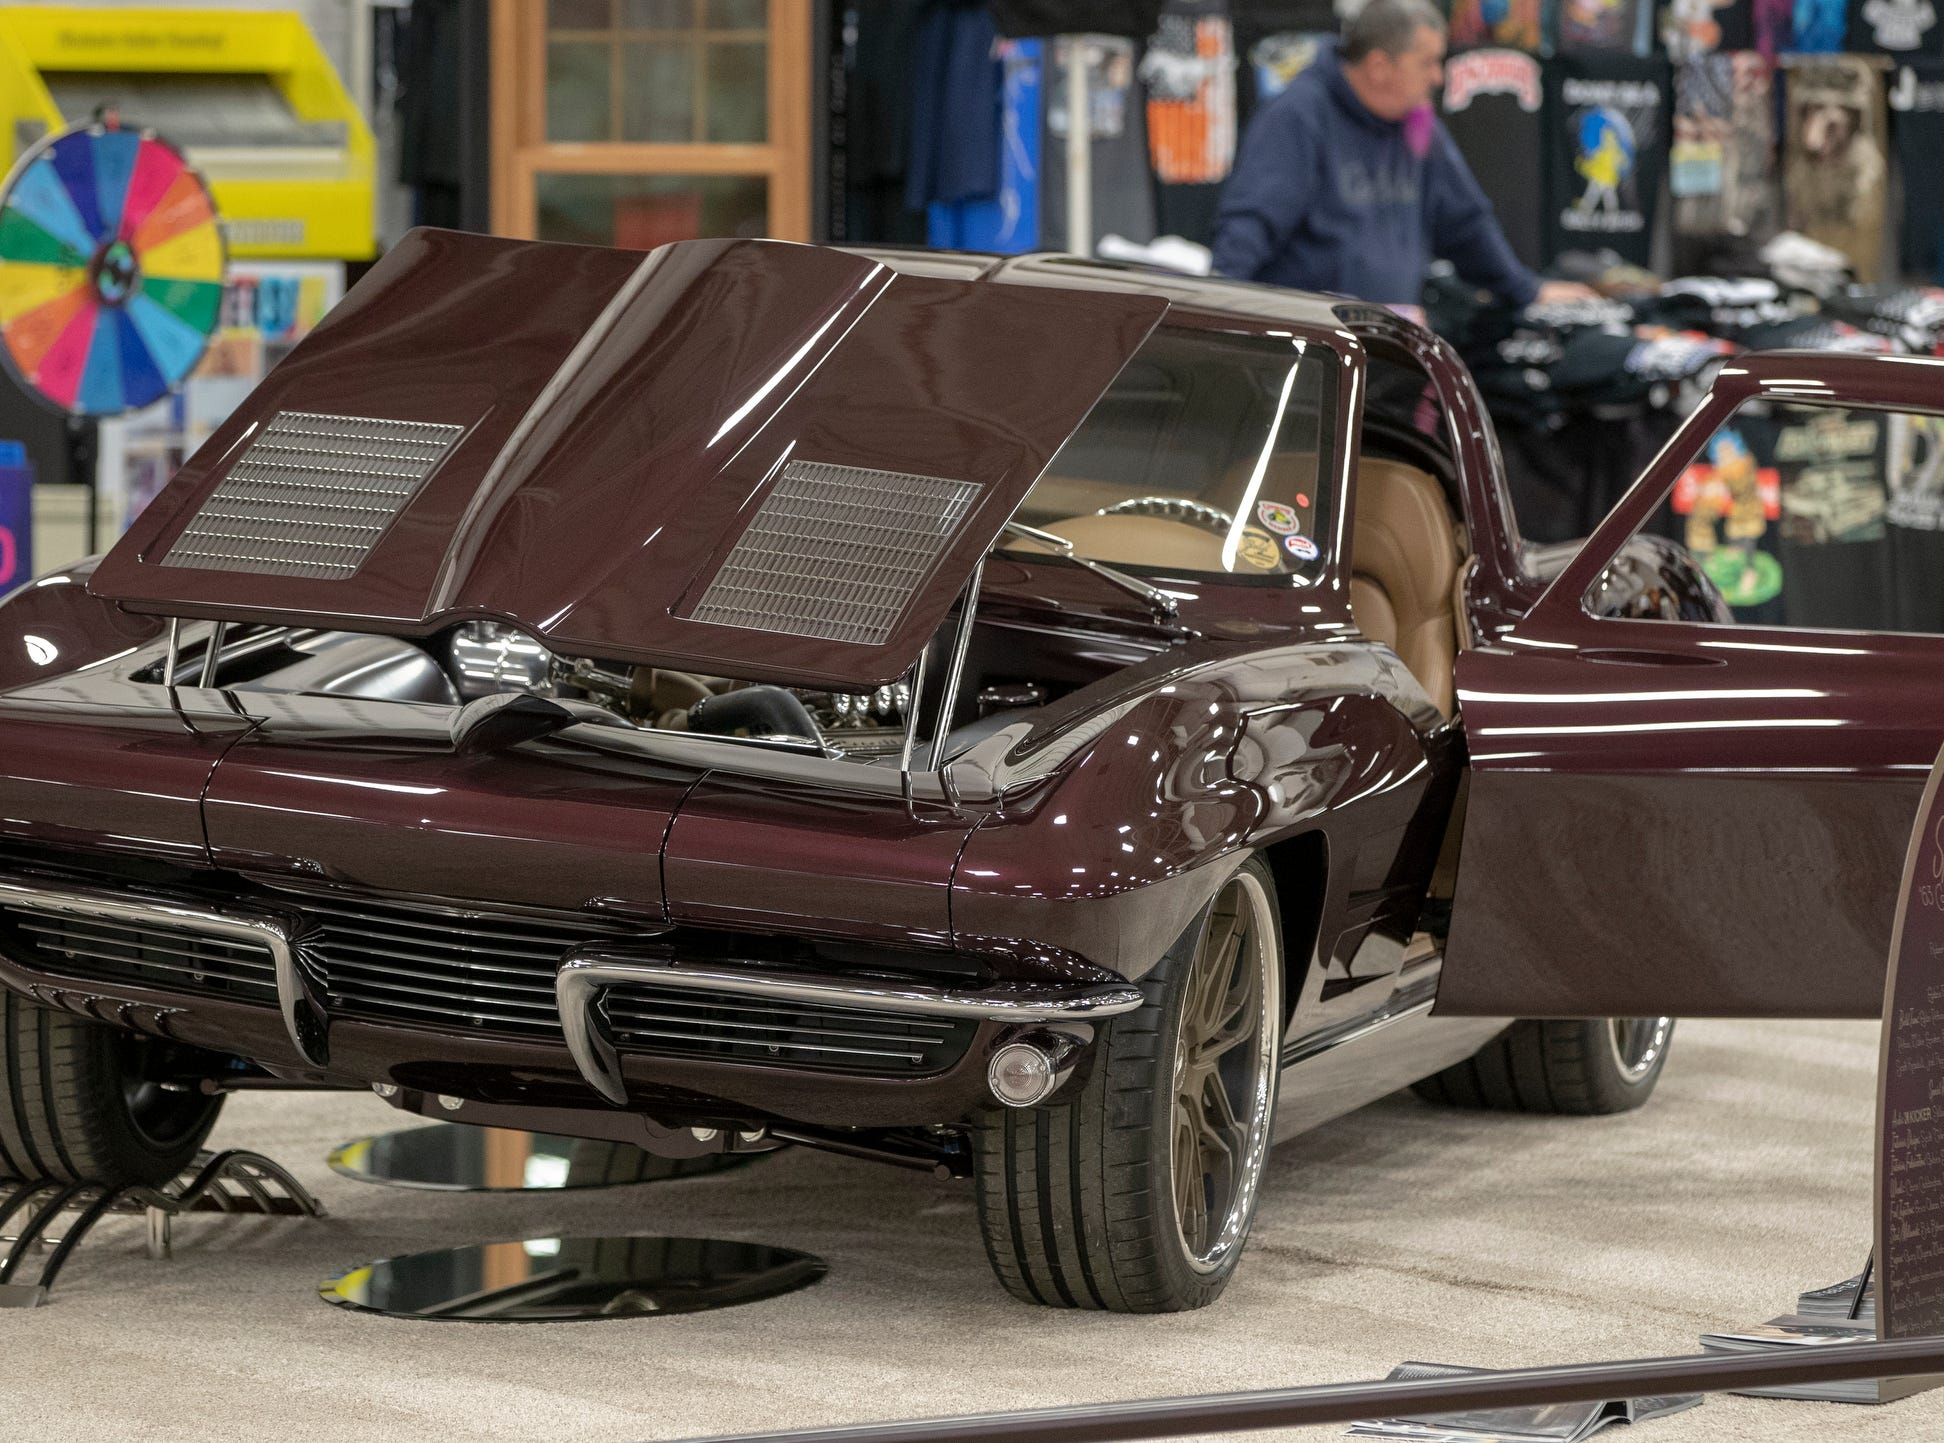 A 1963 Chevrolet Corvette, at World of Wheels at the Indiana State Fairgrounds, Indianapolis, Friday, Feb. 8, 2019. The event runs through the weekend and features four big rooms of stock and heavily customized cars.